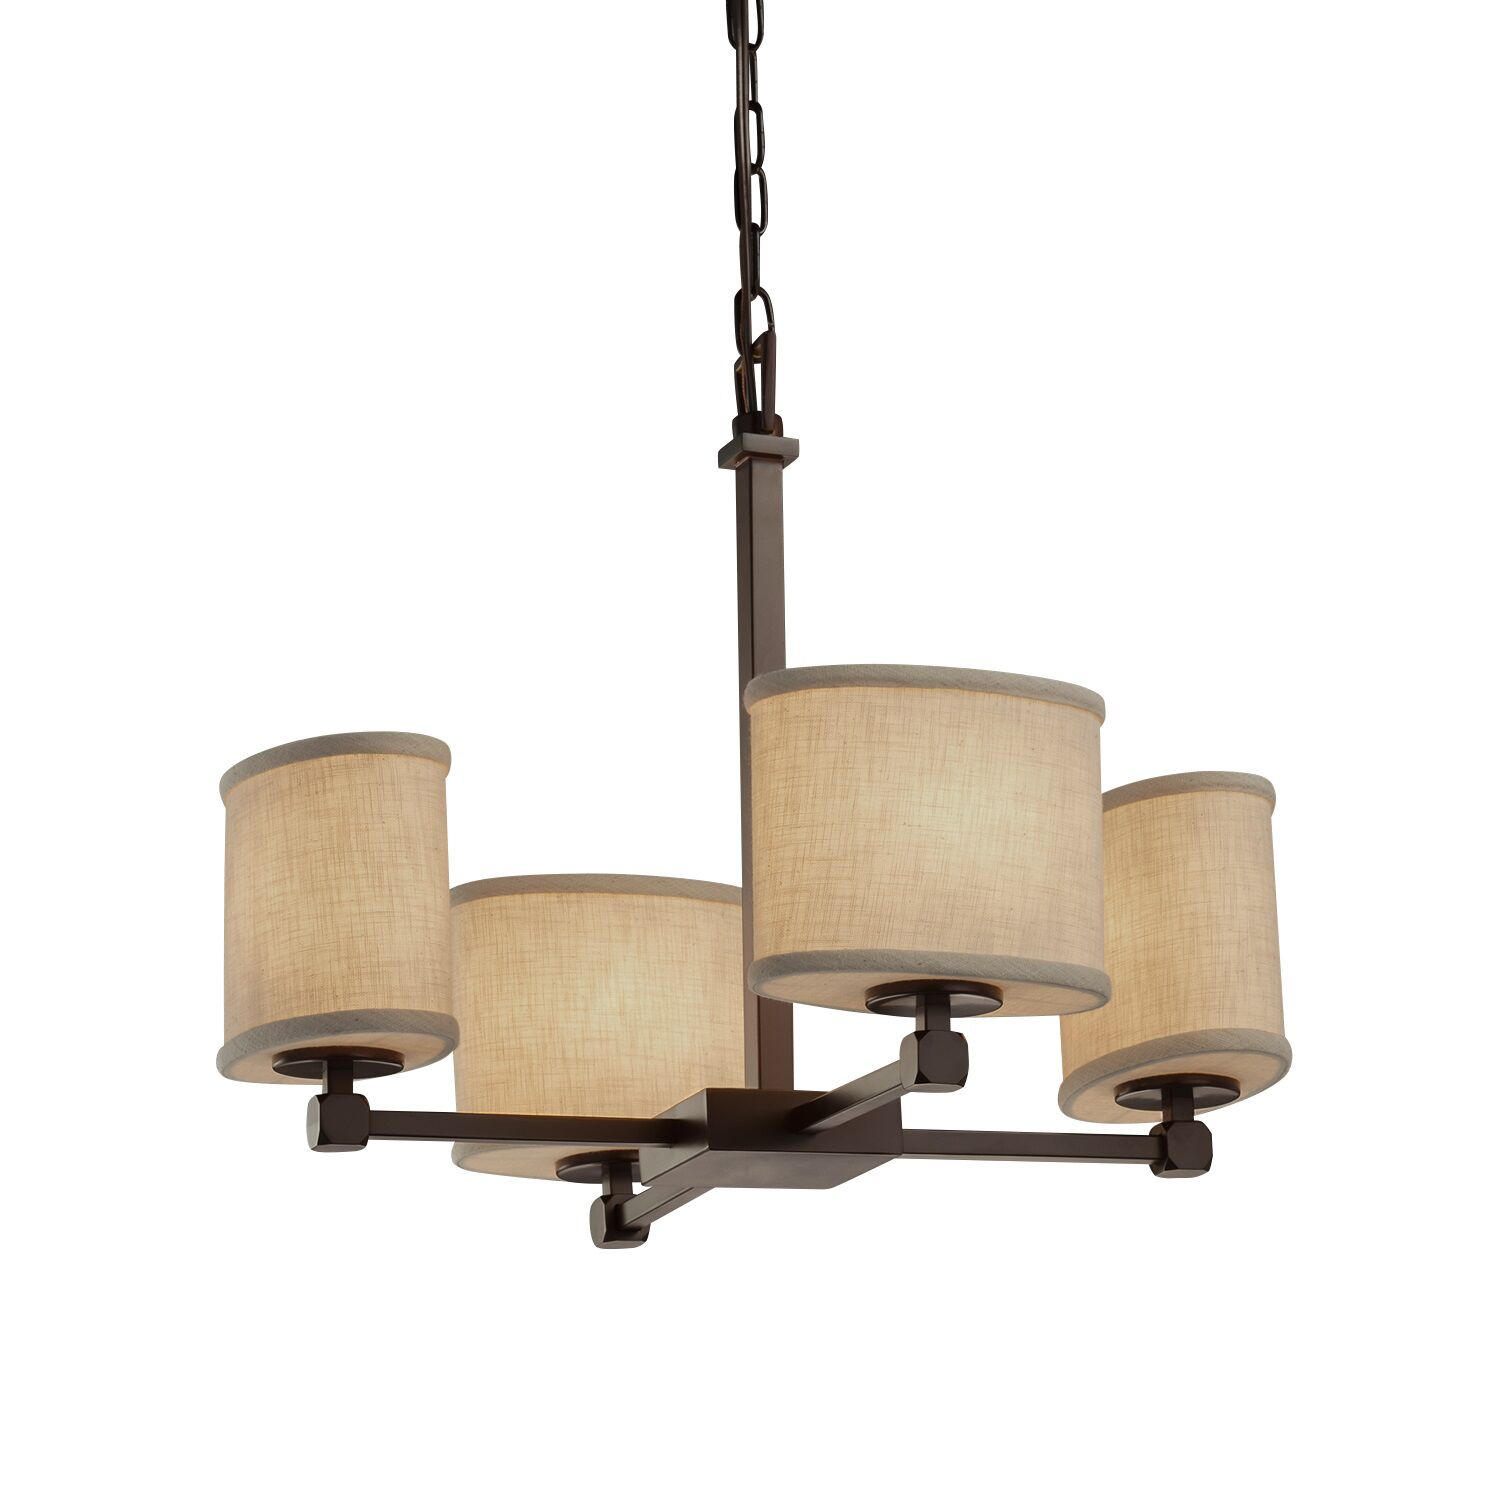 Red Hook 4 Light Oval Chandelier Finish: Polished Chrome, Shade Color: Cream